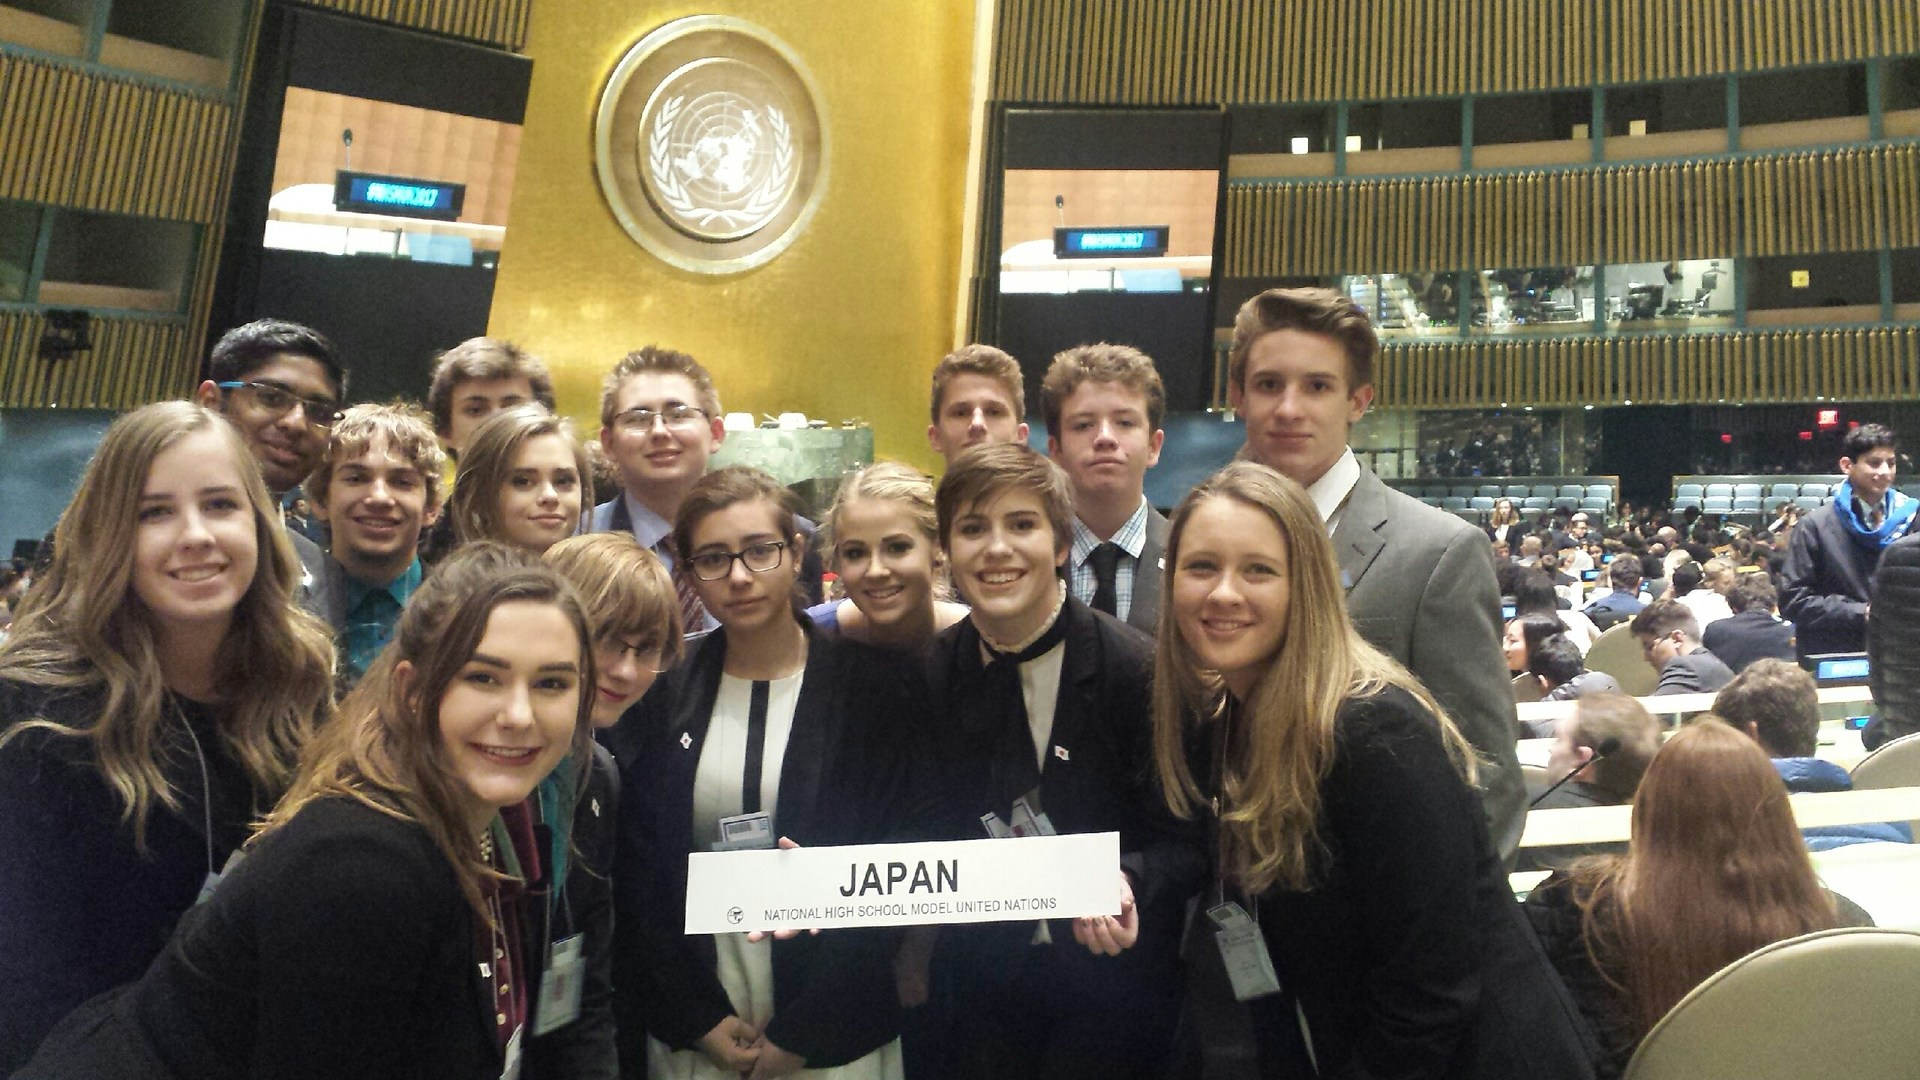 Students in UN room holding